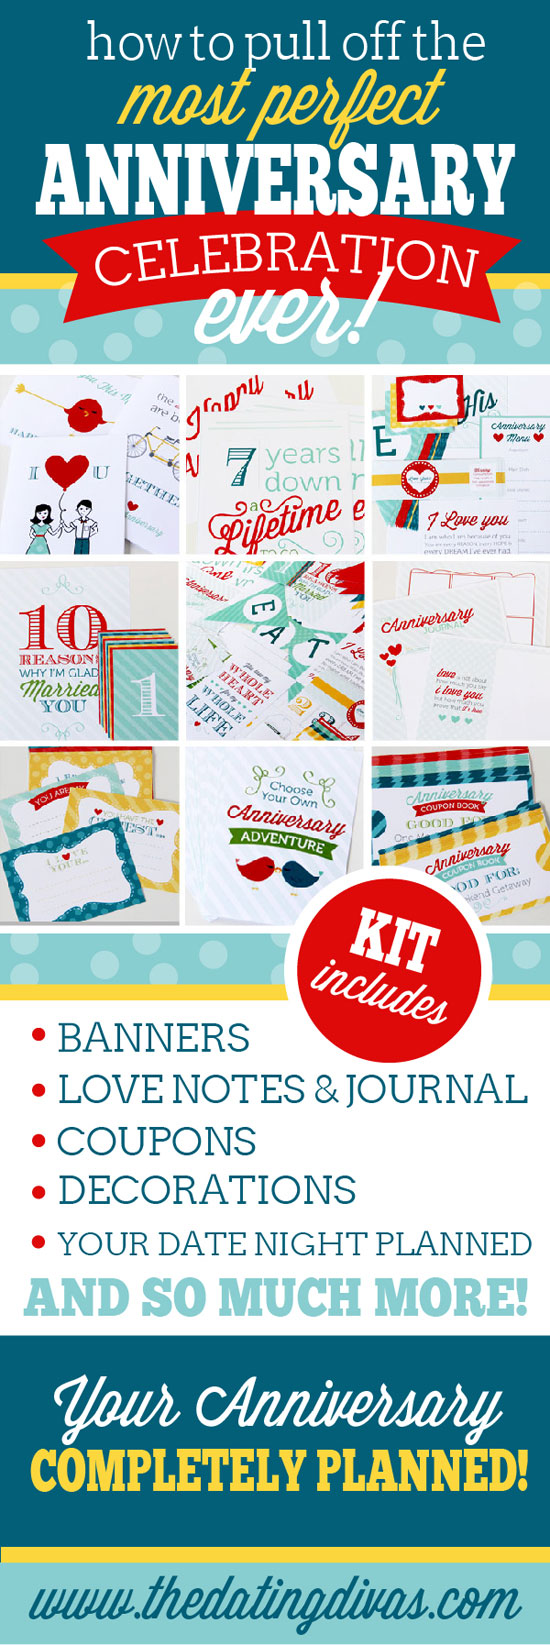 Anniversary-Printable-Pack-Pinterest